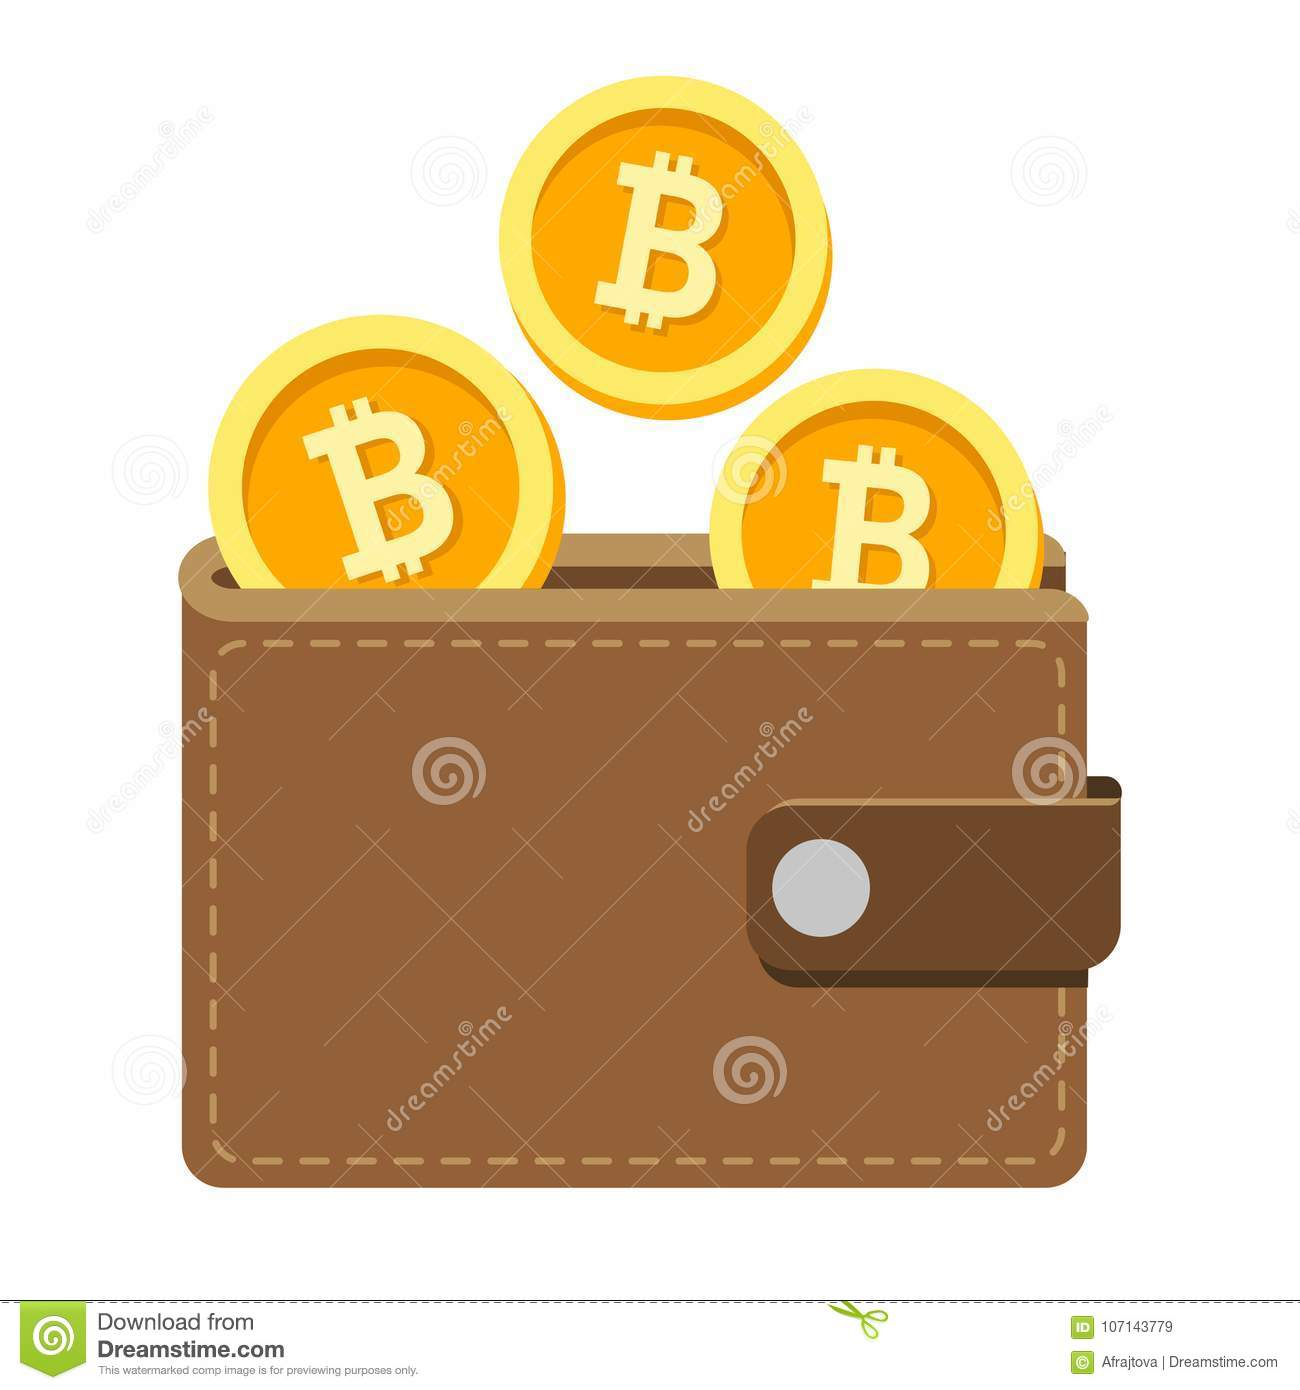 Download Bitcoin Wallet Icon With Cryptocurrency Coins Stock Vector